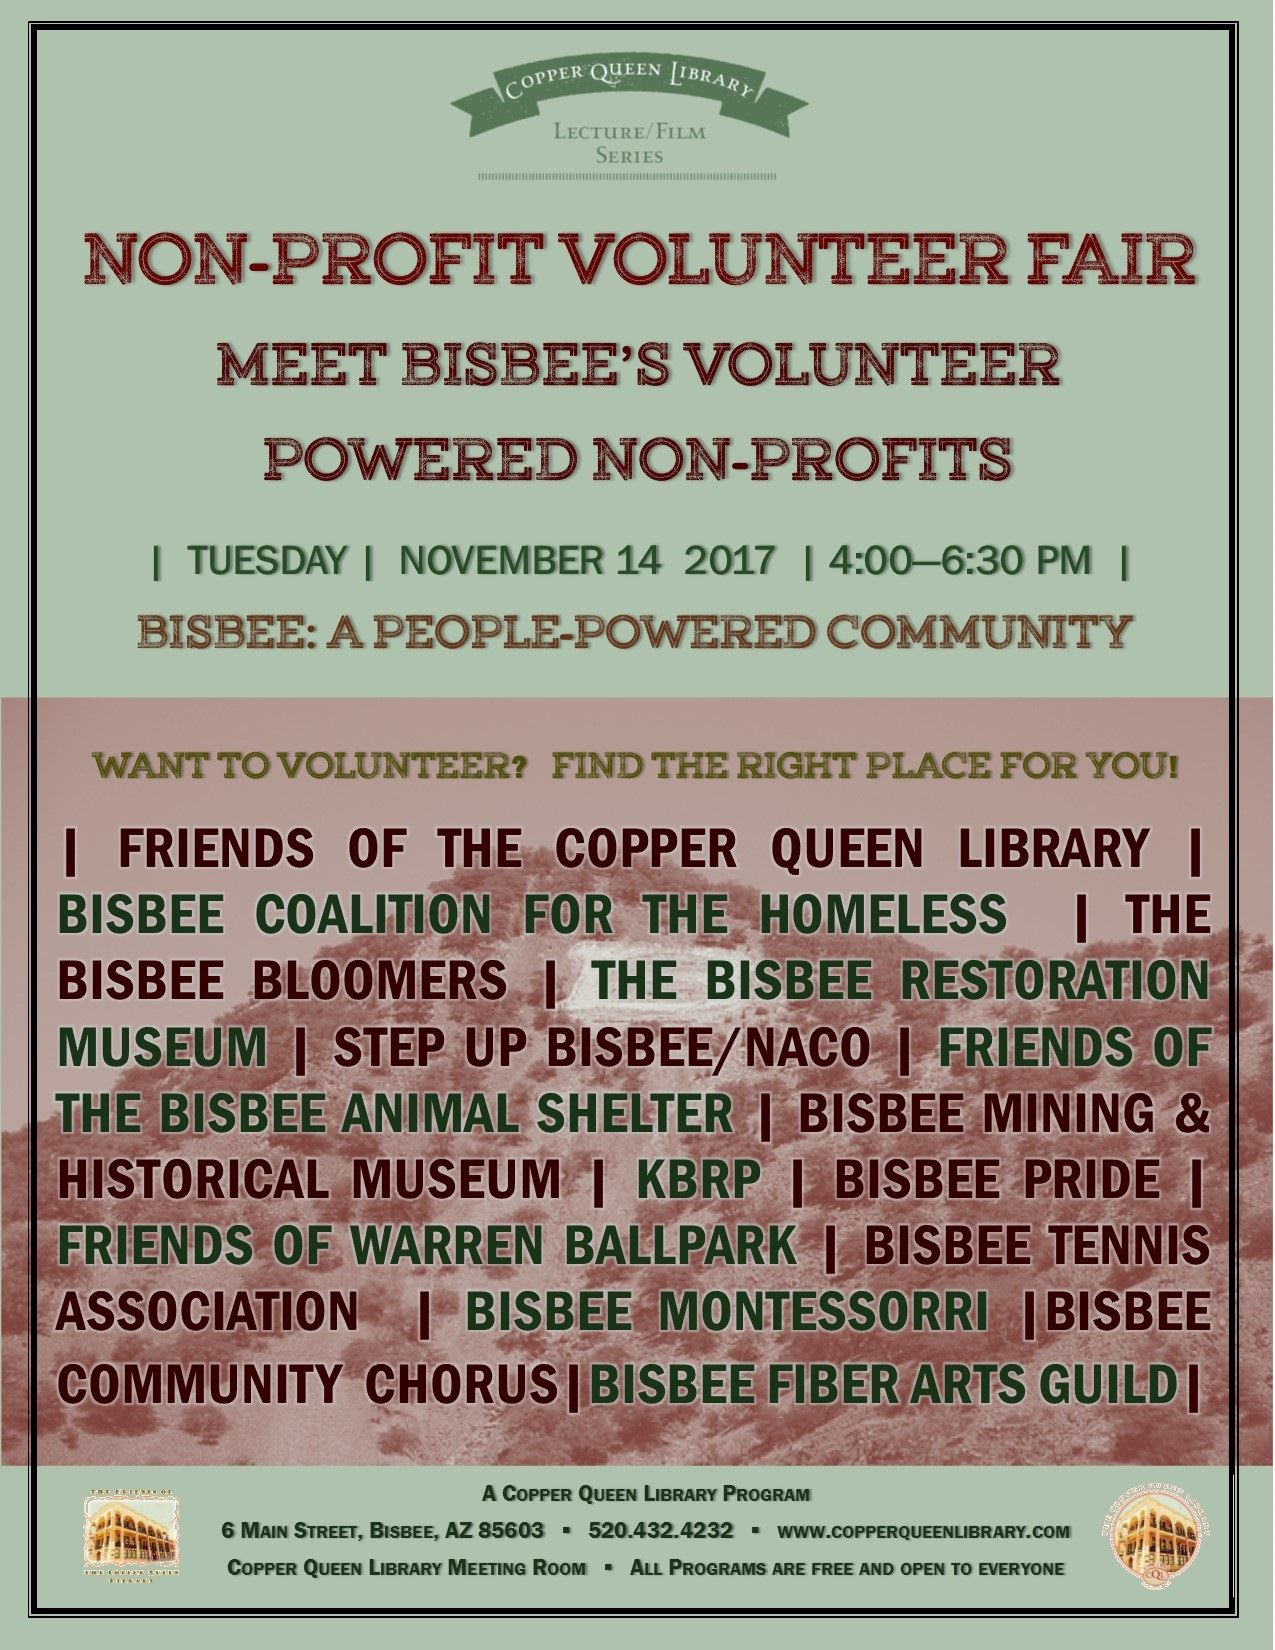 VOLUNTEER FAIR 11.14.2017 POSTER 8.5 X 11